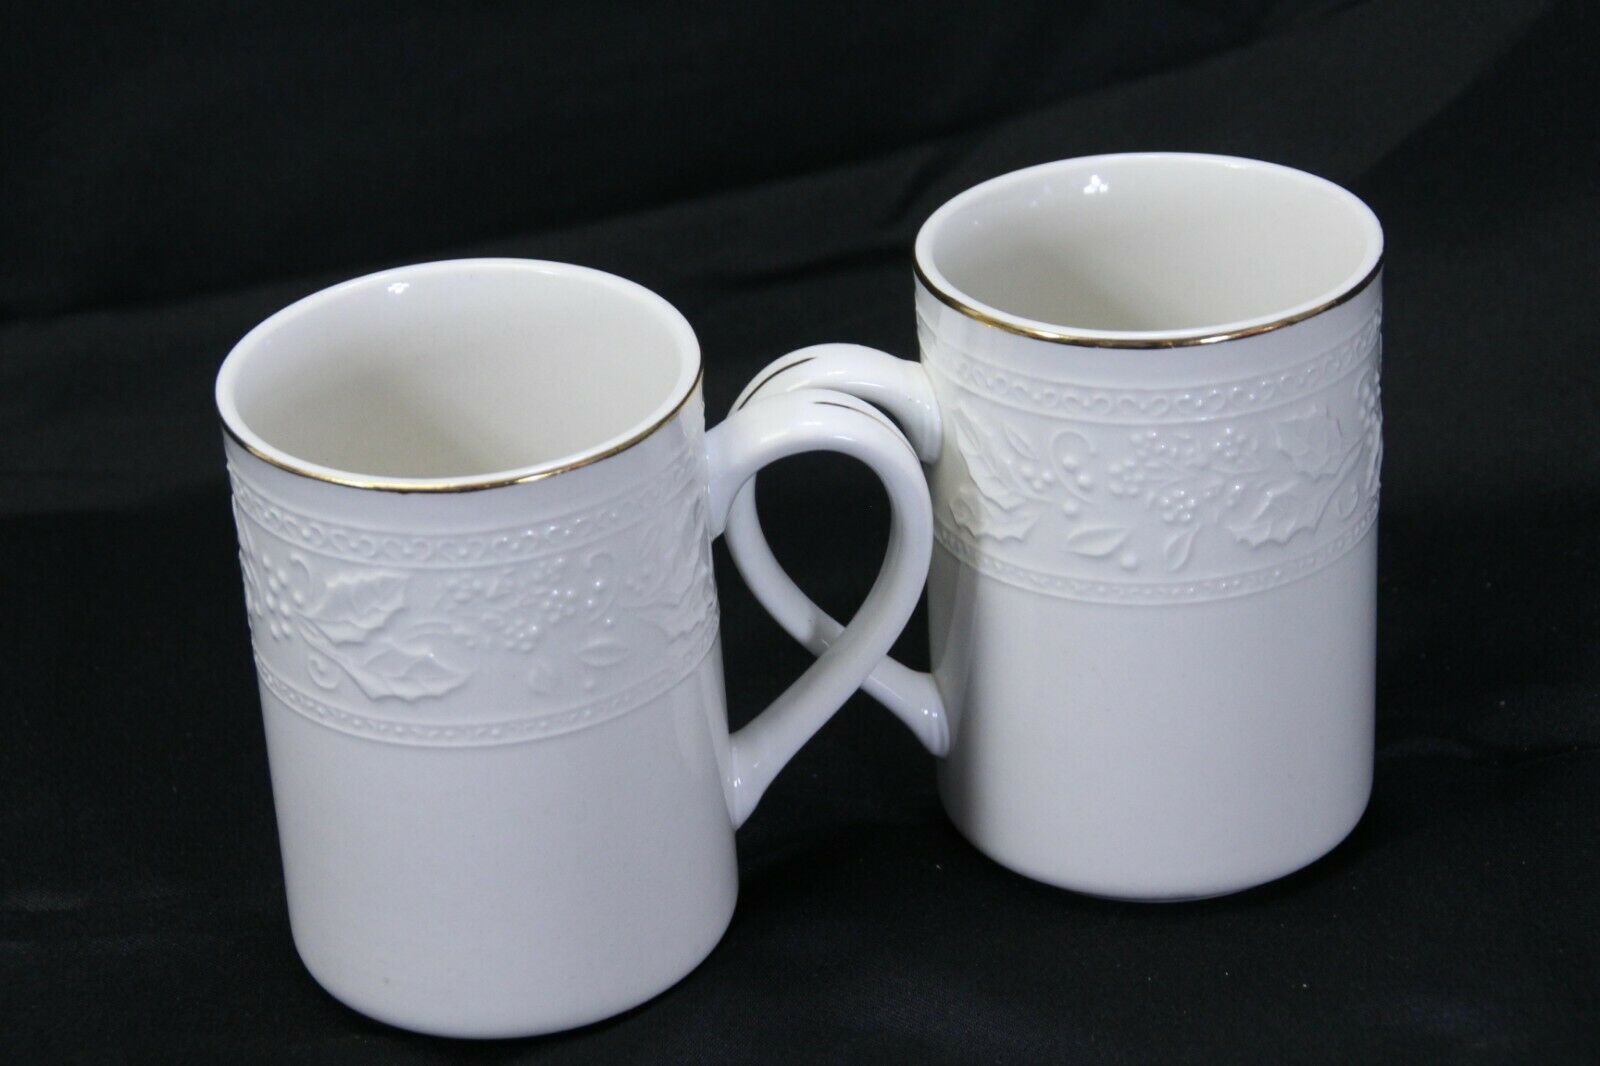 """Libbey White Embossed Holly Cups Mugs Xmas Gold Trim 4.25"""" Lot of 8 image 5"""